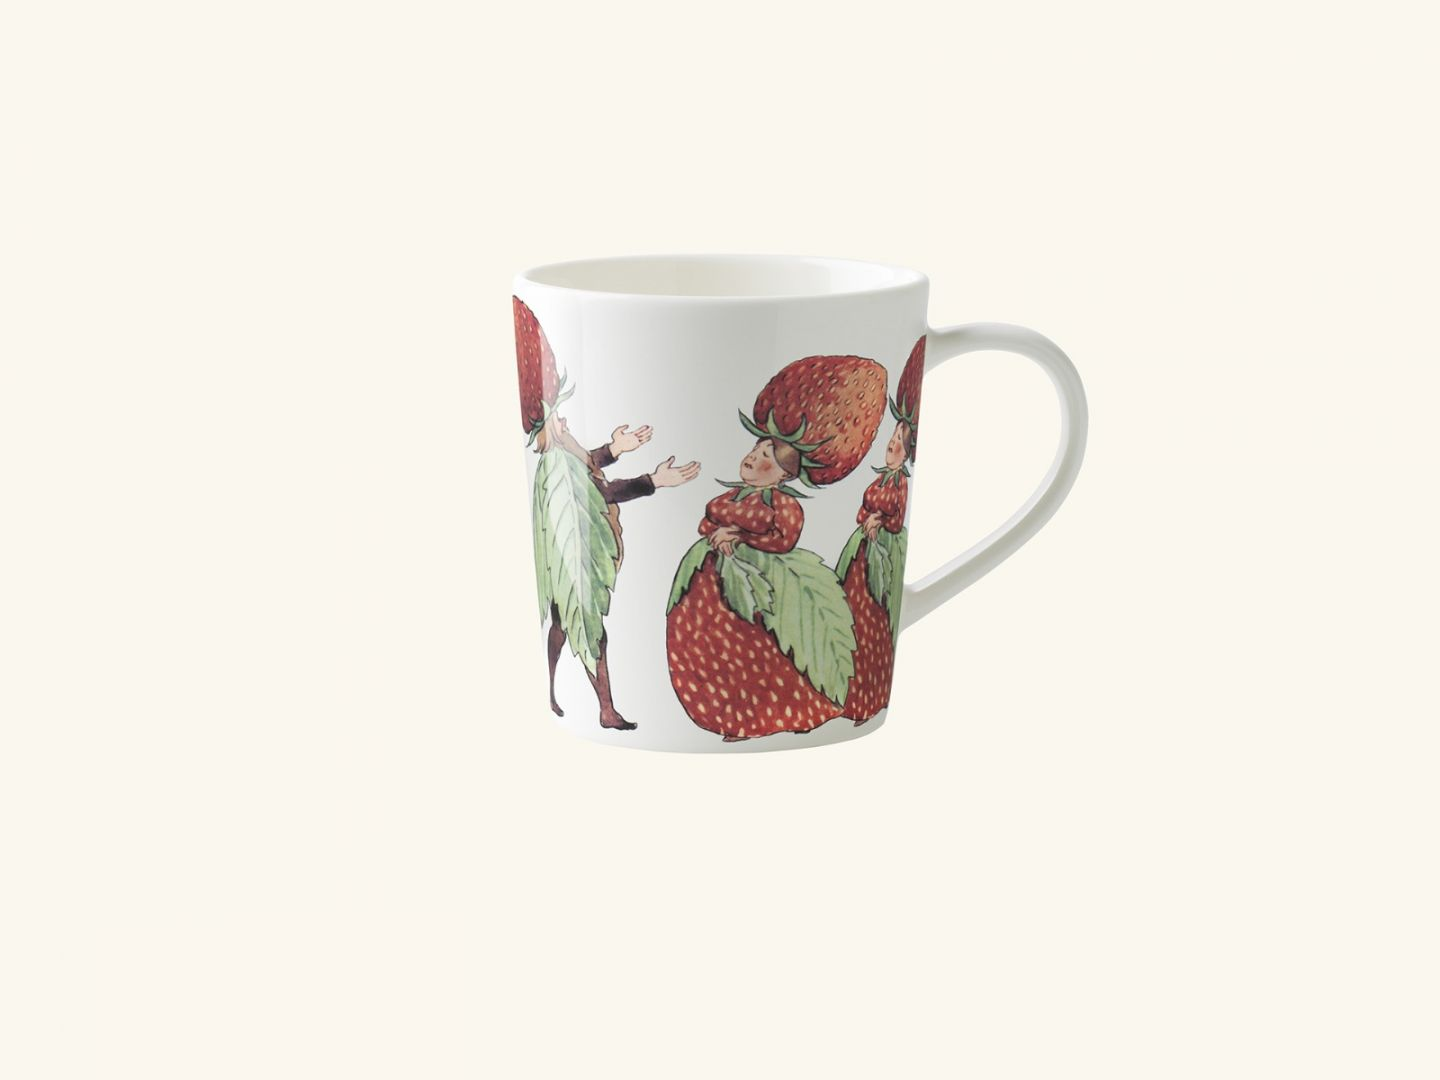 Mug w handle, The Strawberry family